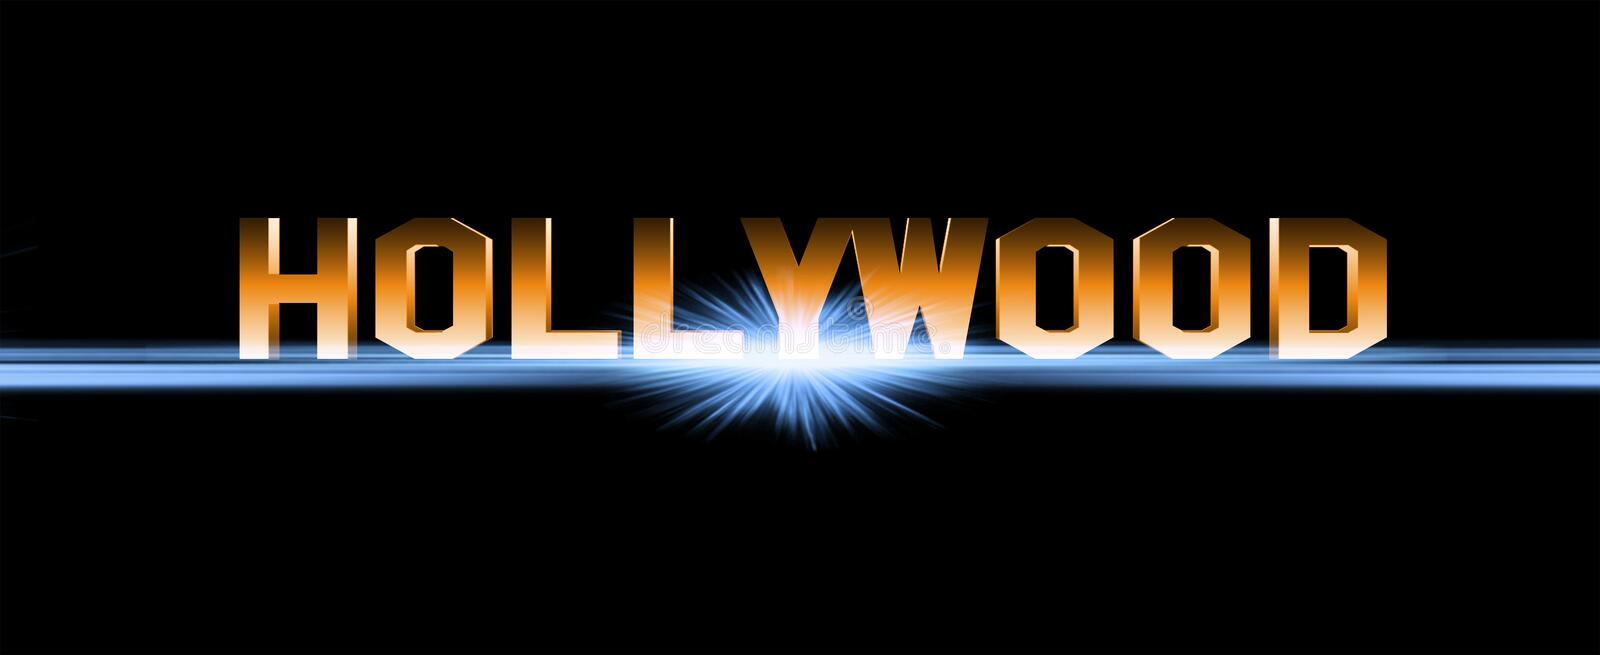 Signe de Hollywood illustration libre de droits